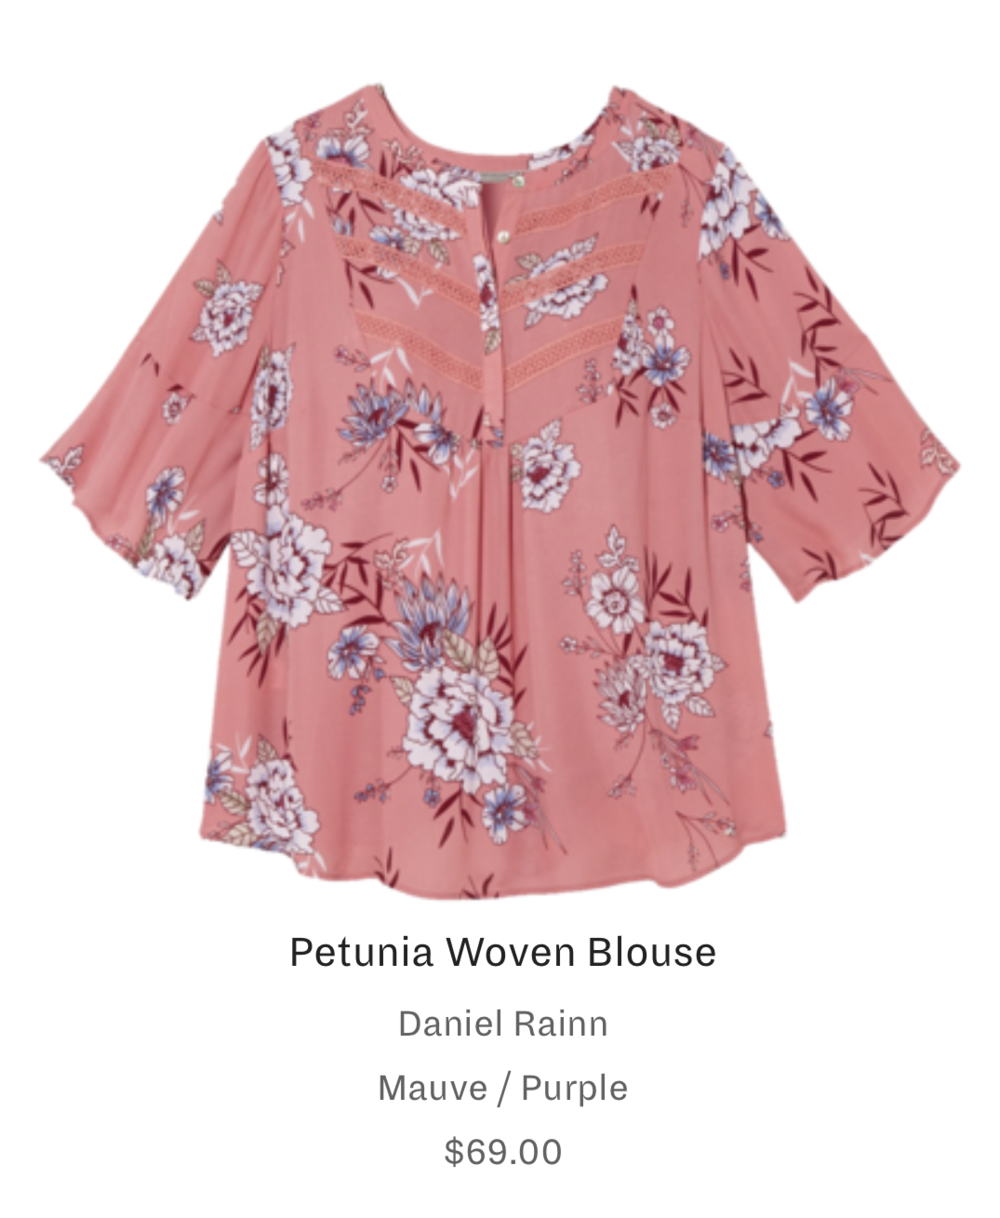 blouse_1.png